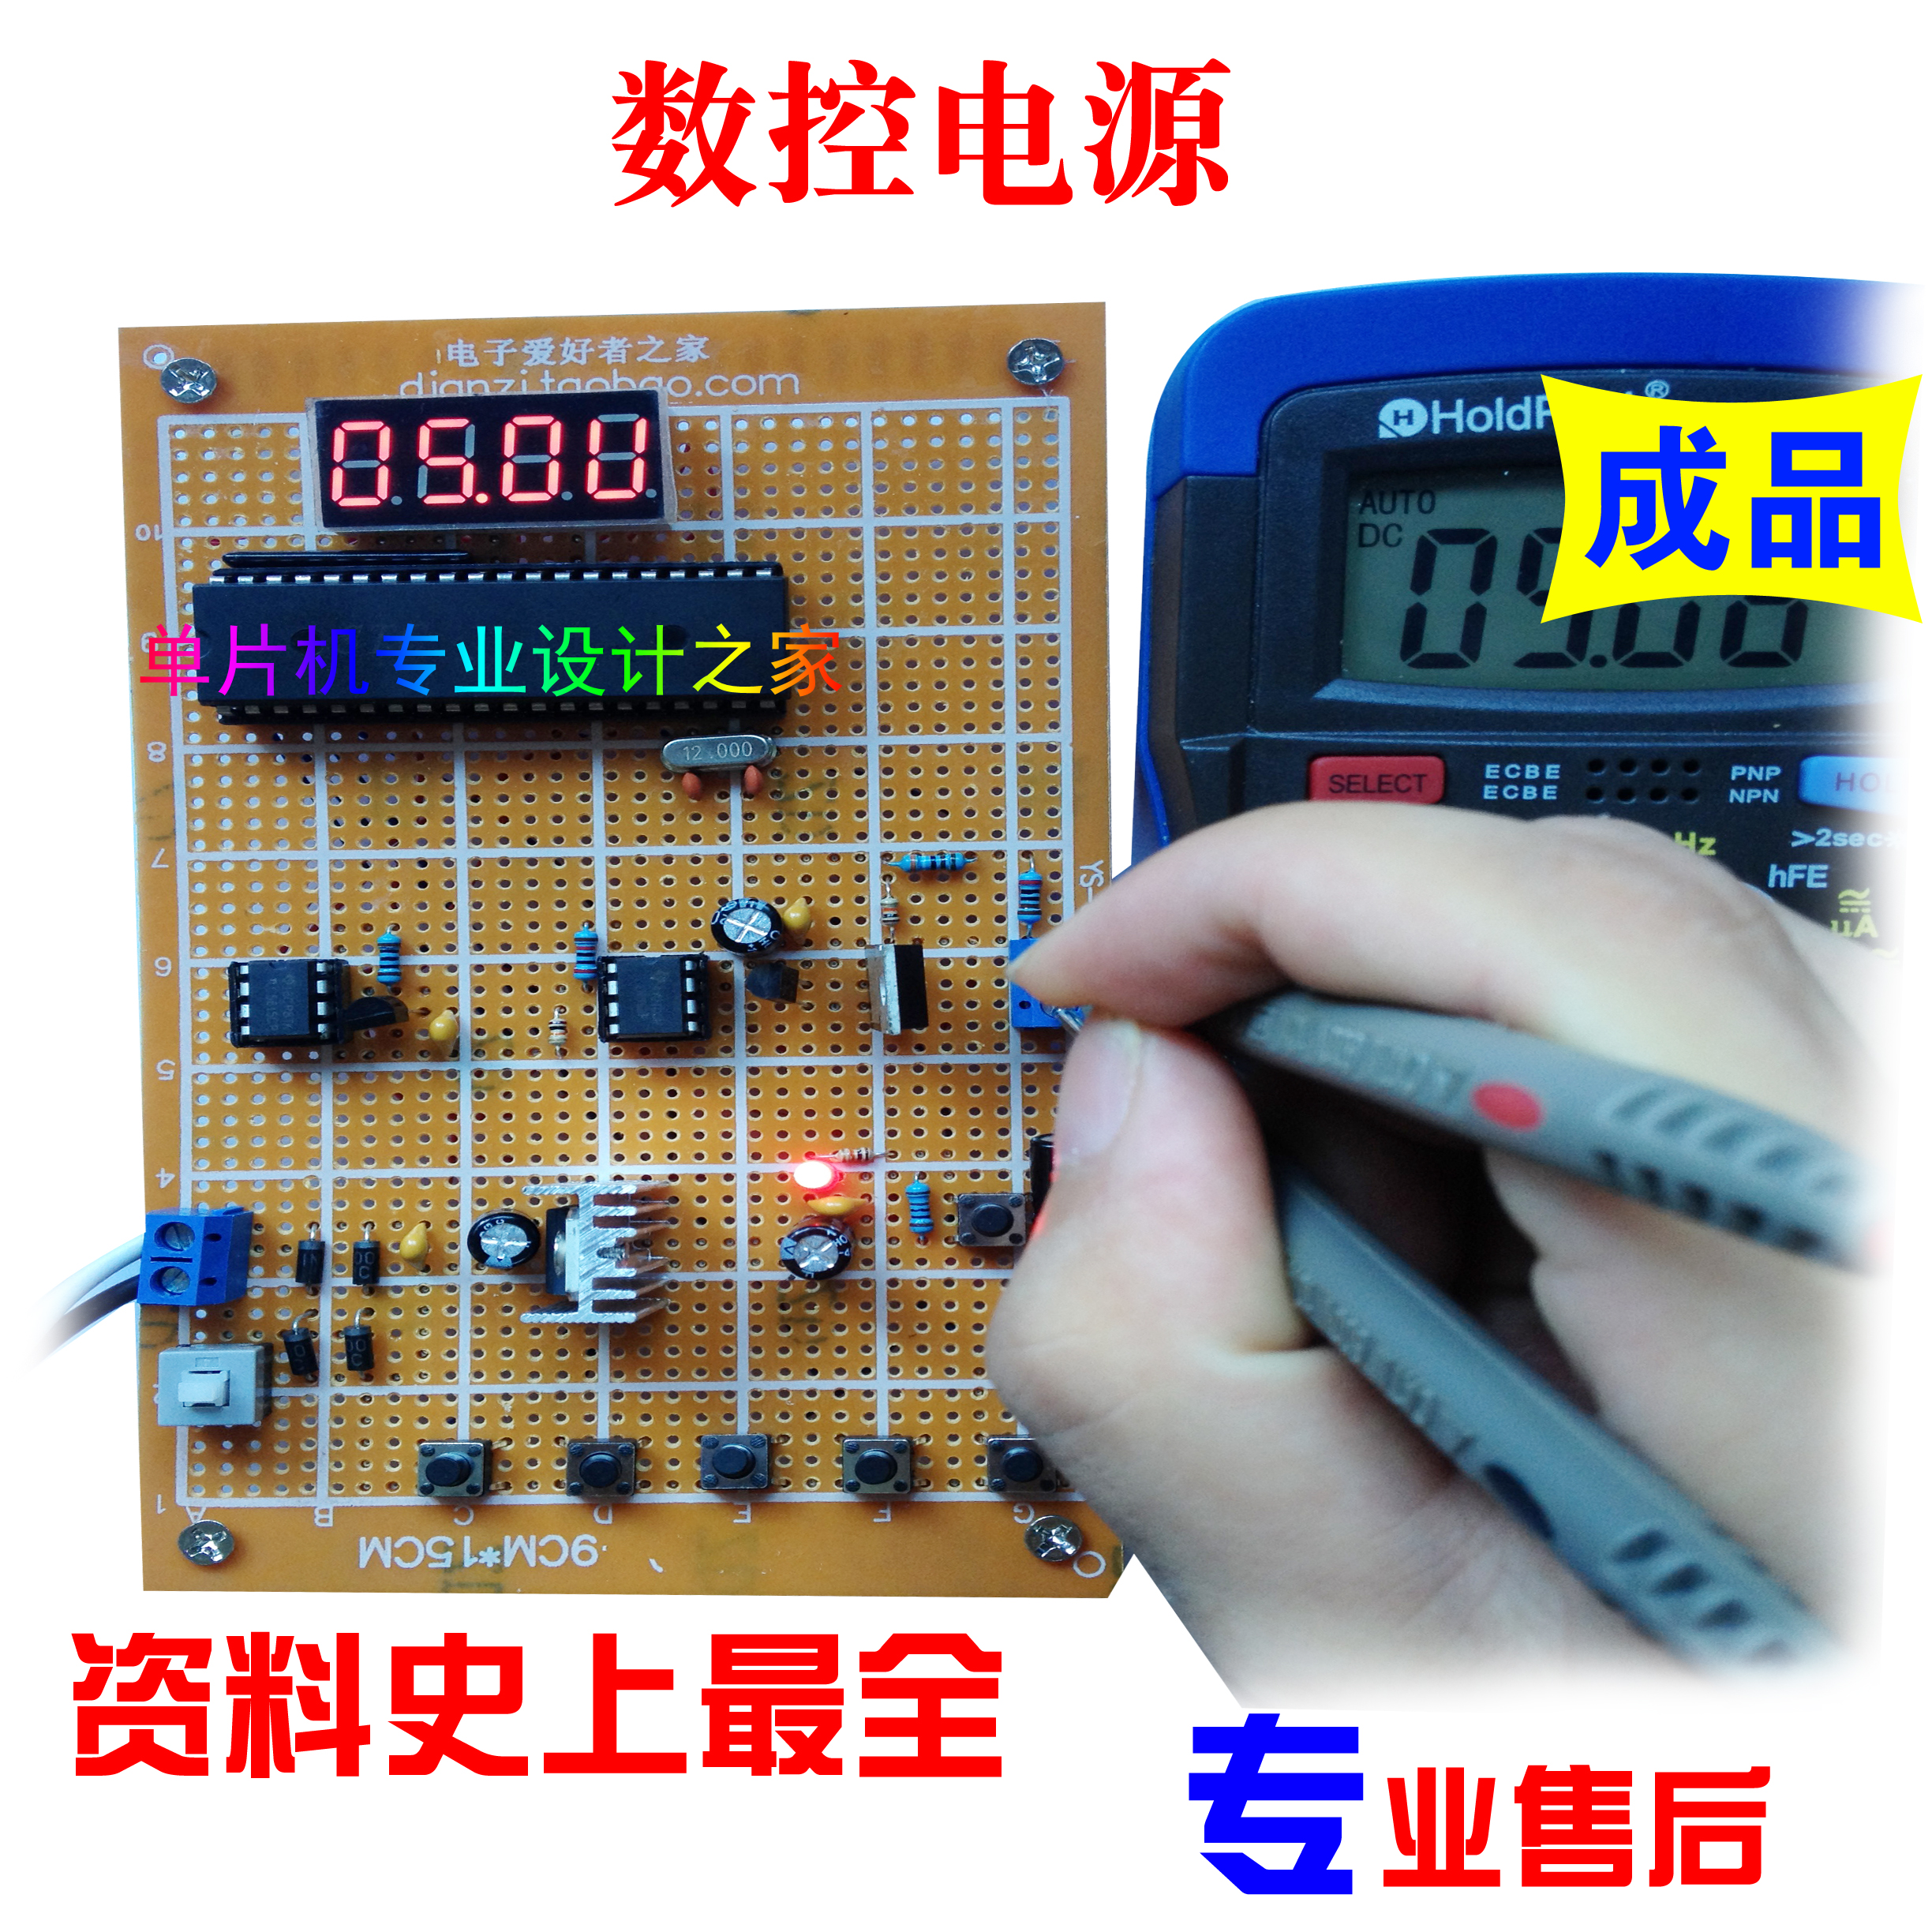 cheap Purchase china agnet New Import STM8S207R8T6 Microcontroller